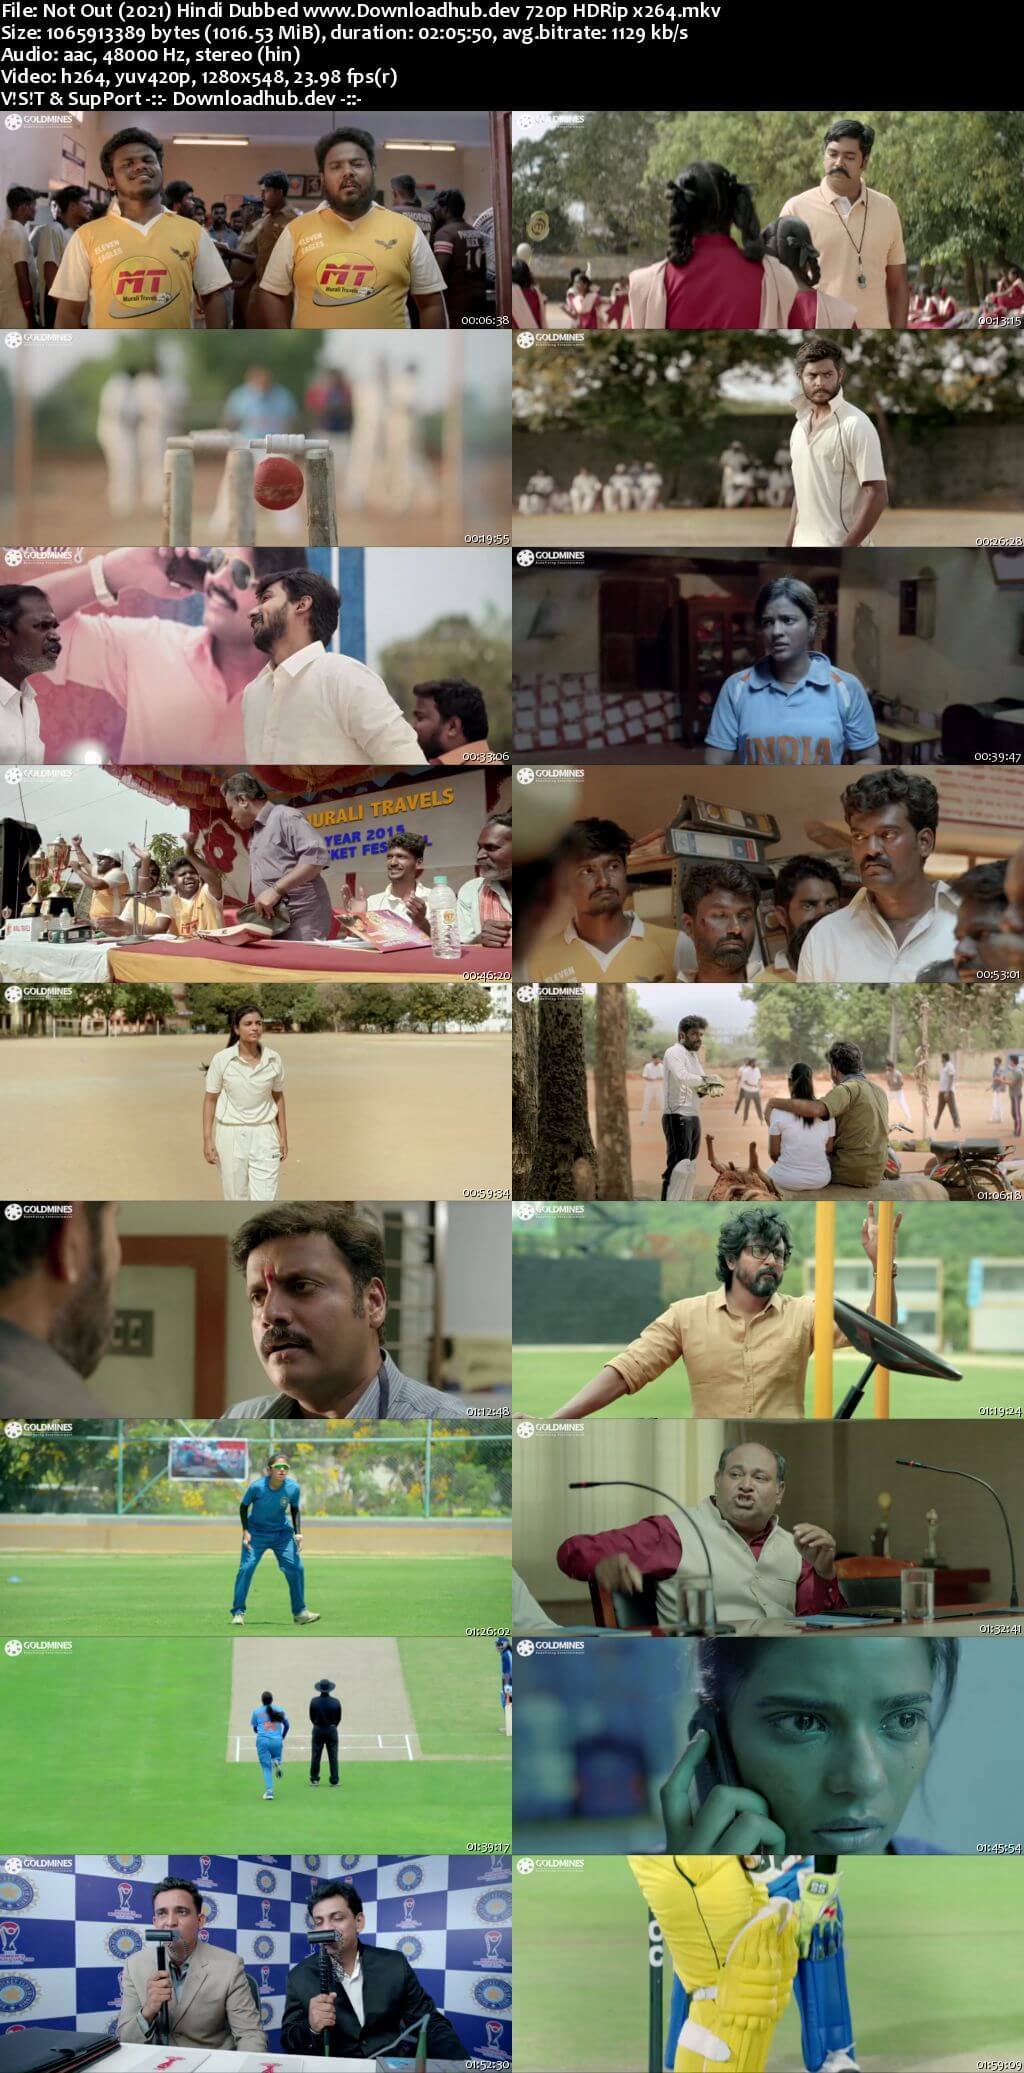 Not Out 2021 Hindi Dubbed 720p HDRip x264